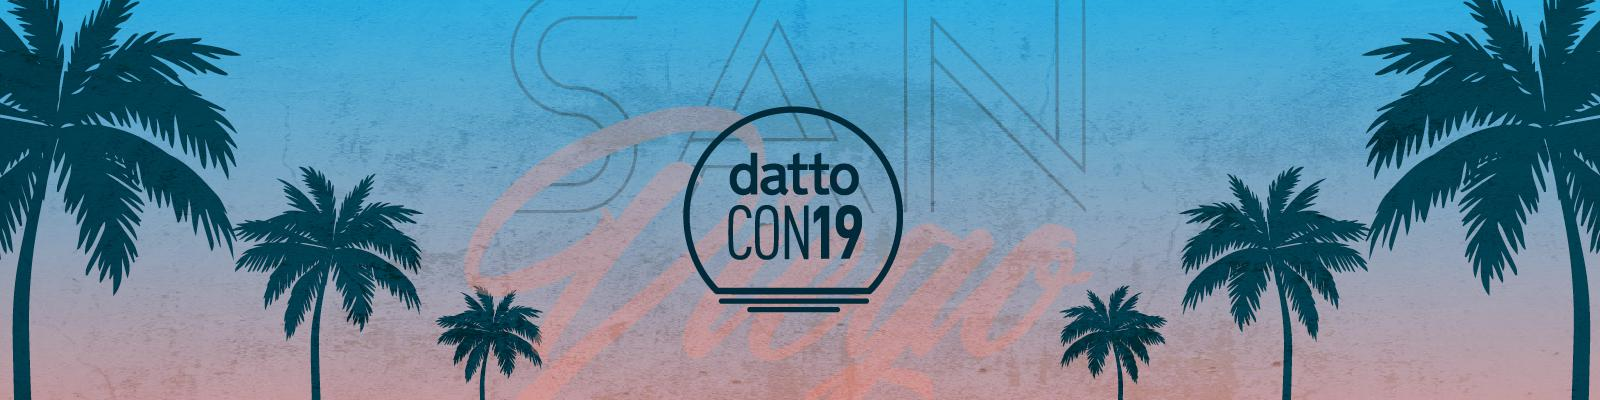 DattoCon San Diego: What I'm Most Excited for